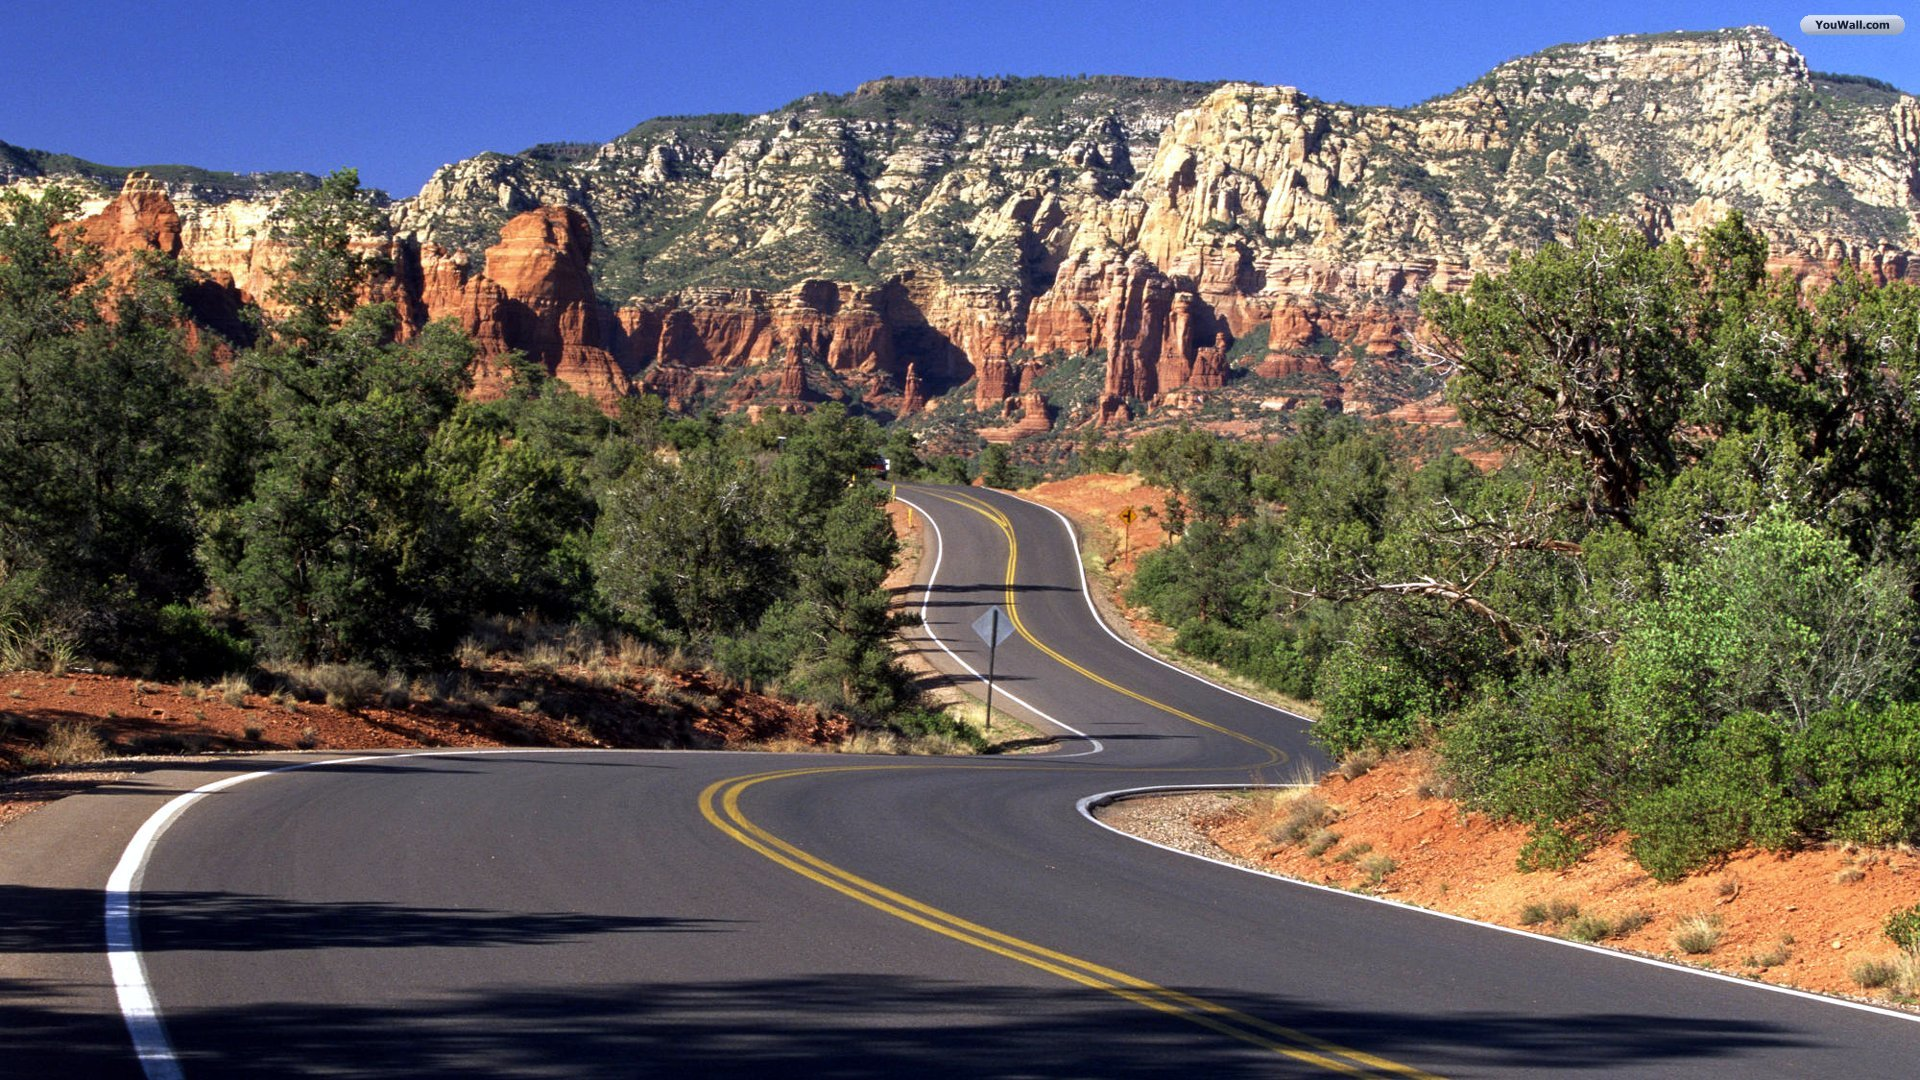 YouWall   Arizona Road Wallpaper   wallpaperwallpapersfree wallpaper 1920x1080